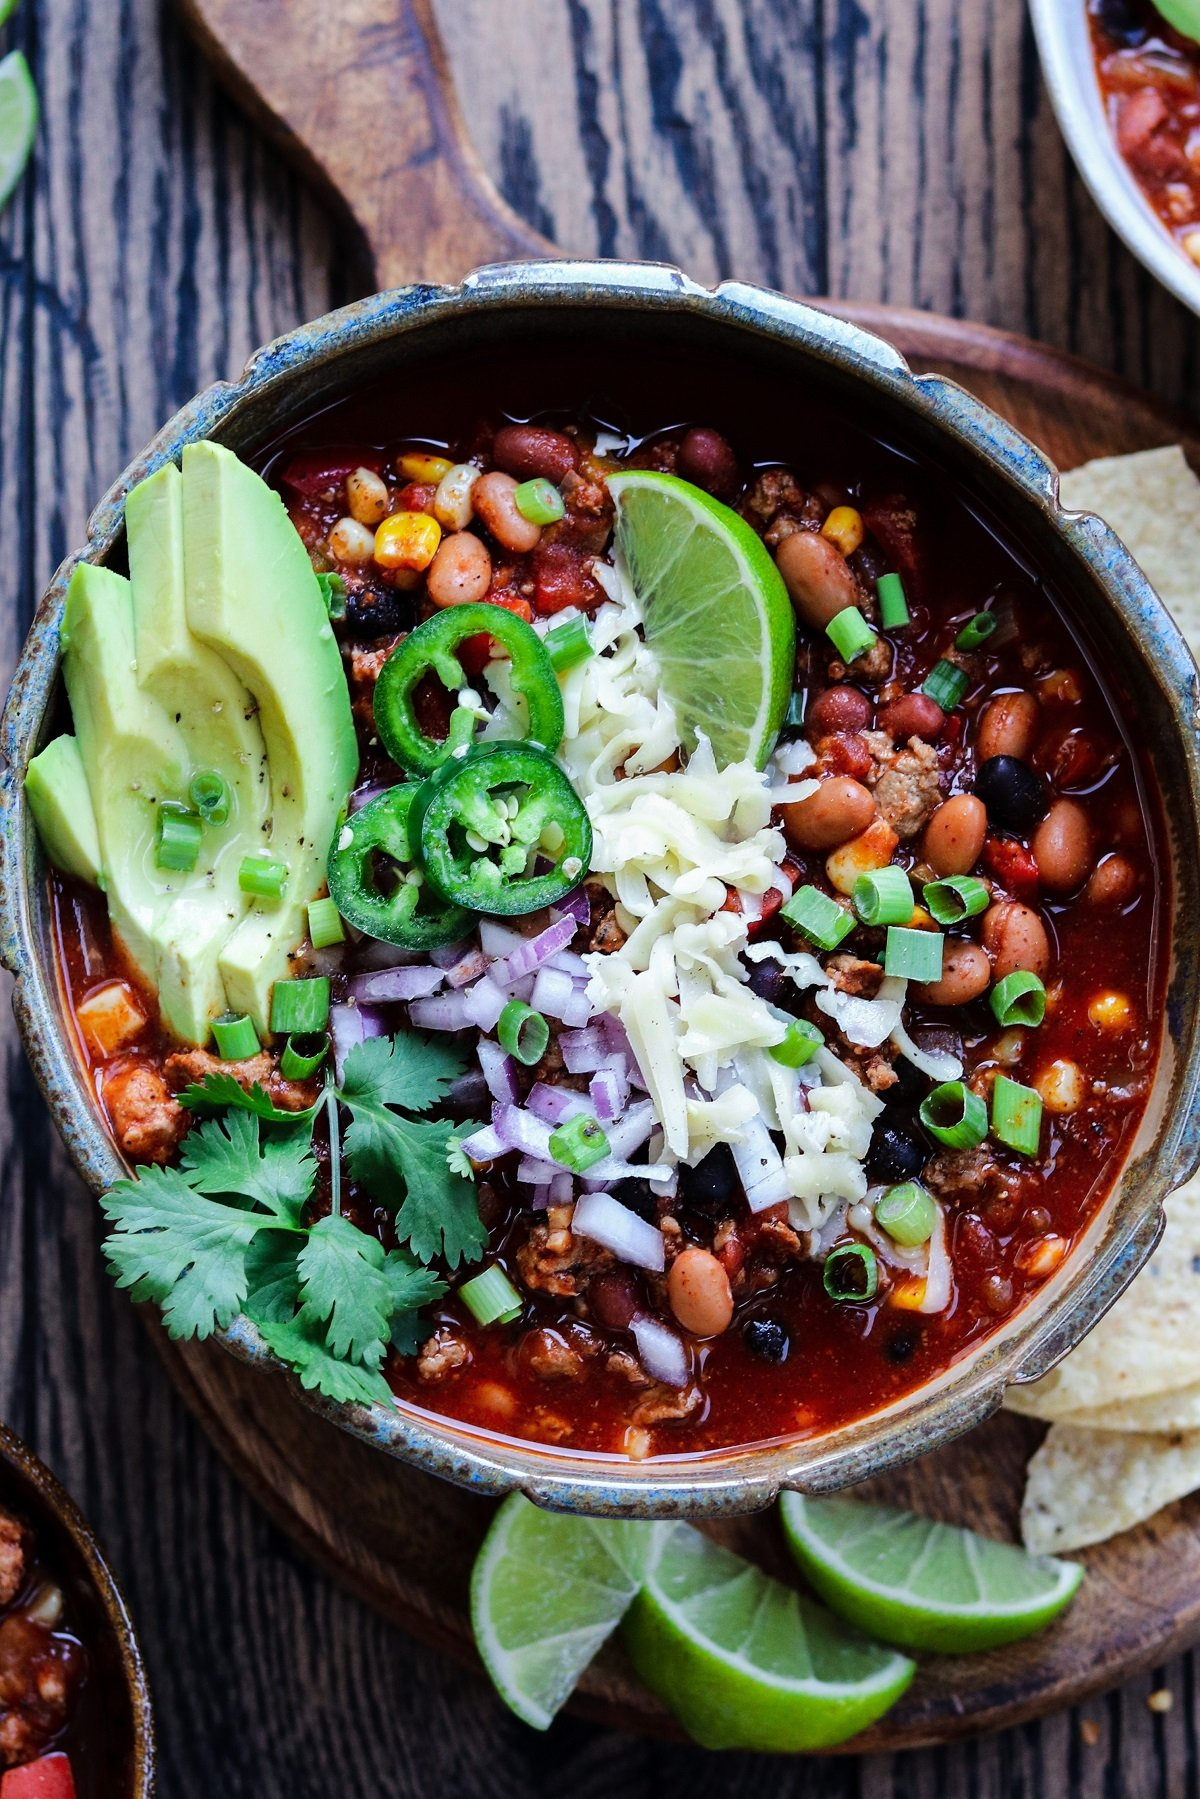 Turkey chili garnished with lime wedges and cilantro, served with tortilla chips.